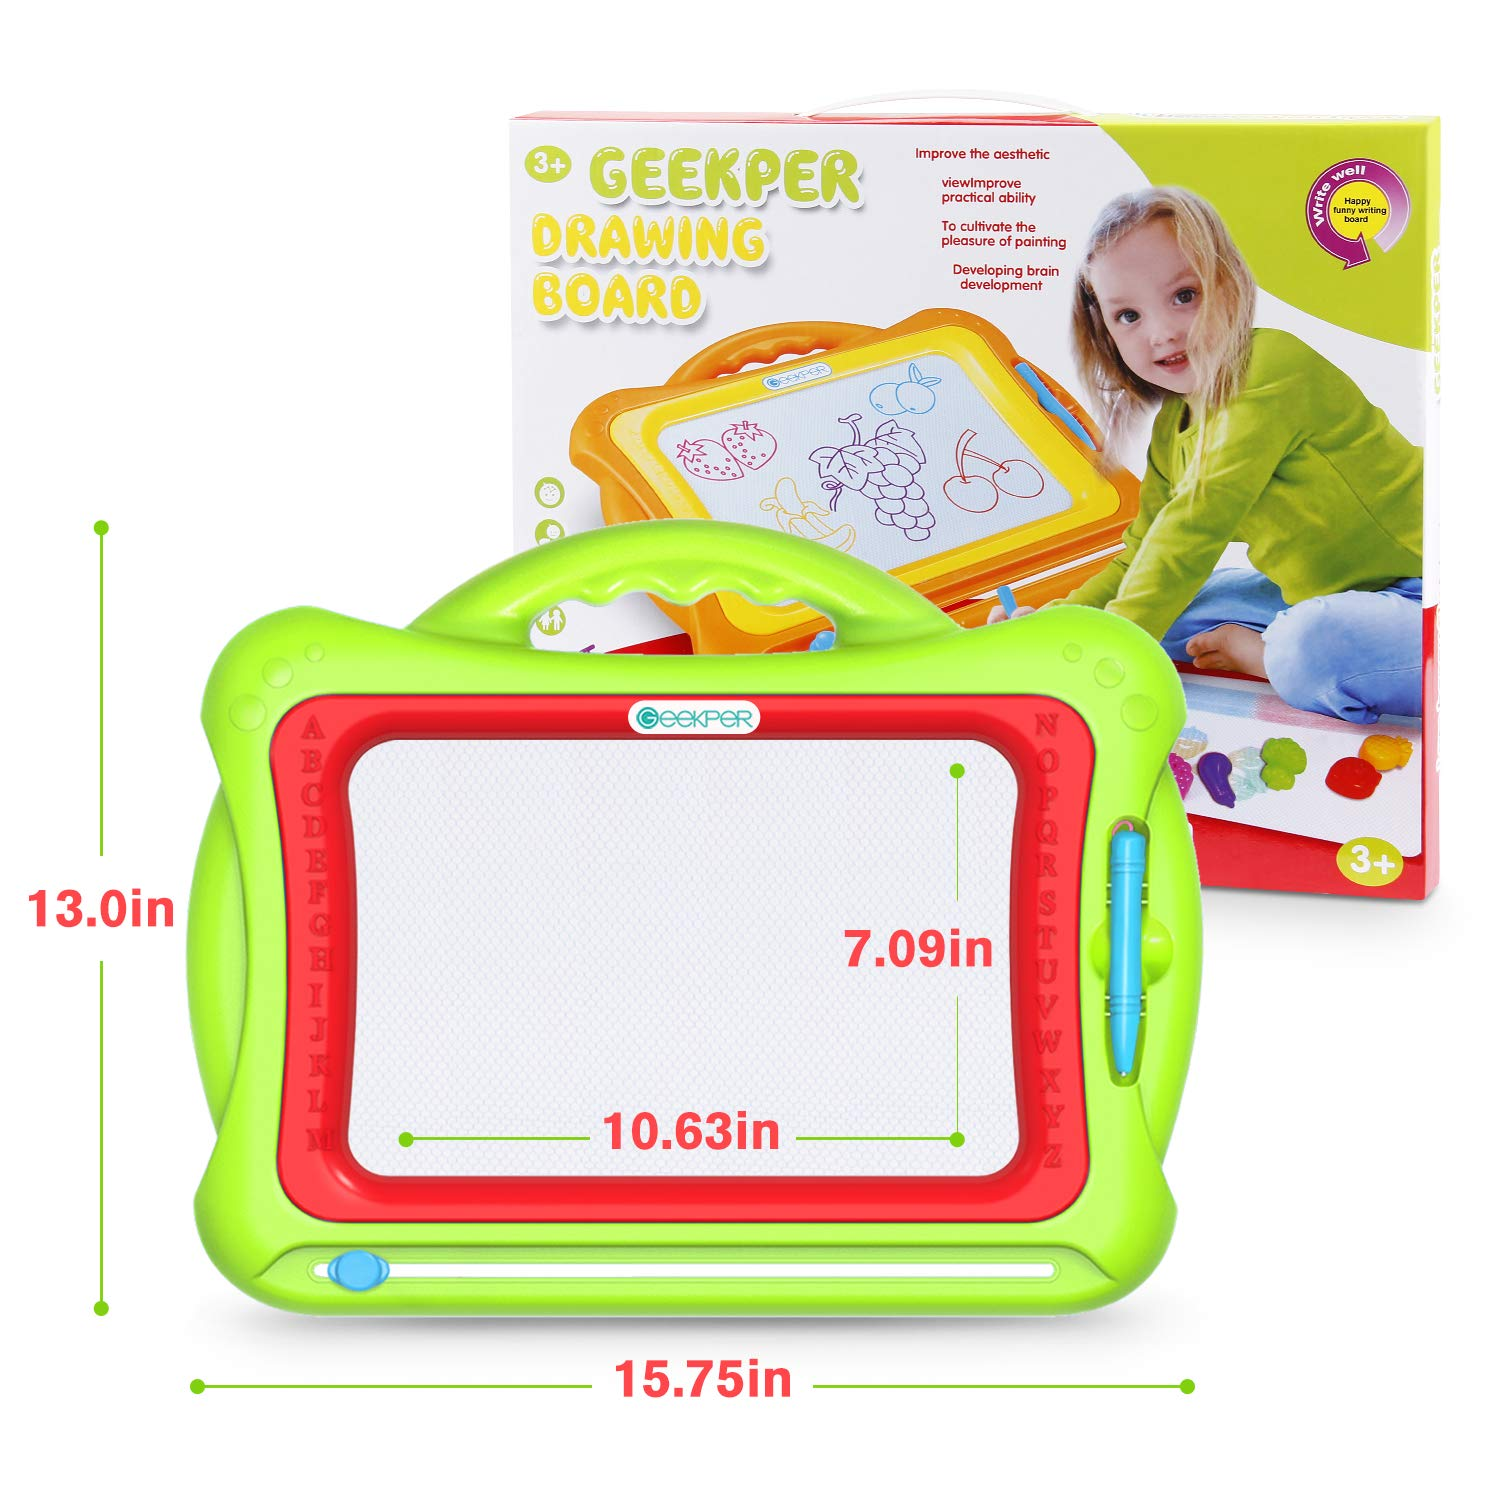 Geekper Green Erasable Colorful Magna Doodle Drawing Board Toys for Kids Writing Sketching Pad with 5 Shape Stamps Magnetic Drawing Board